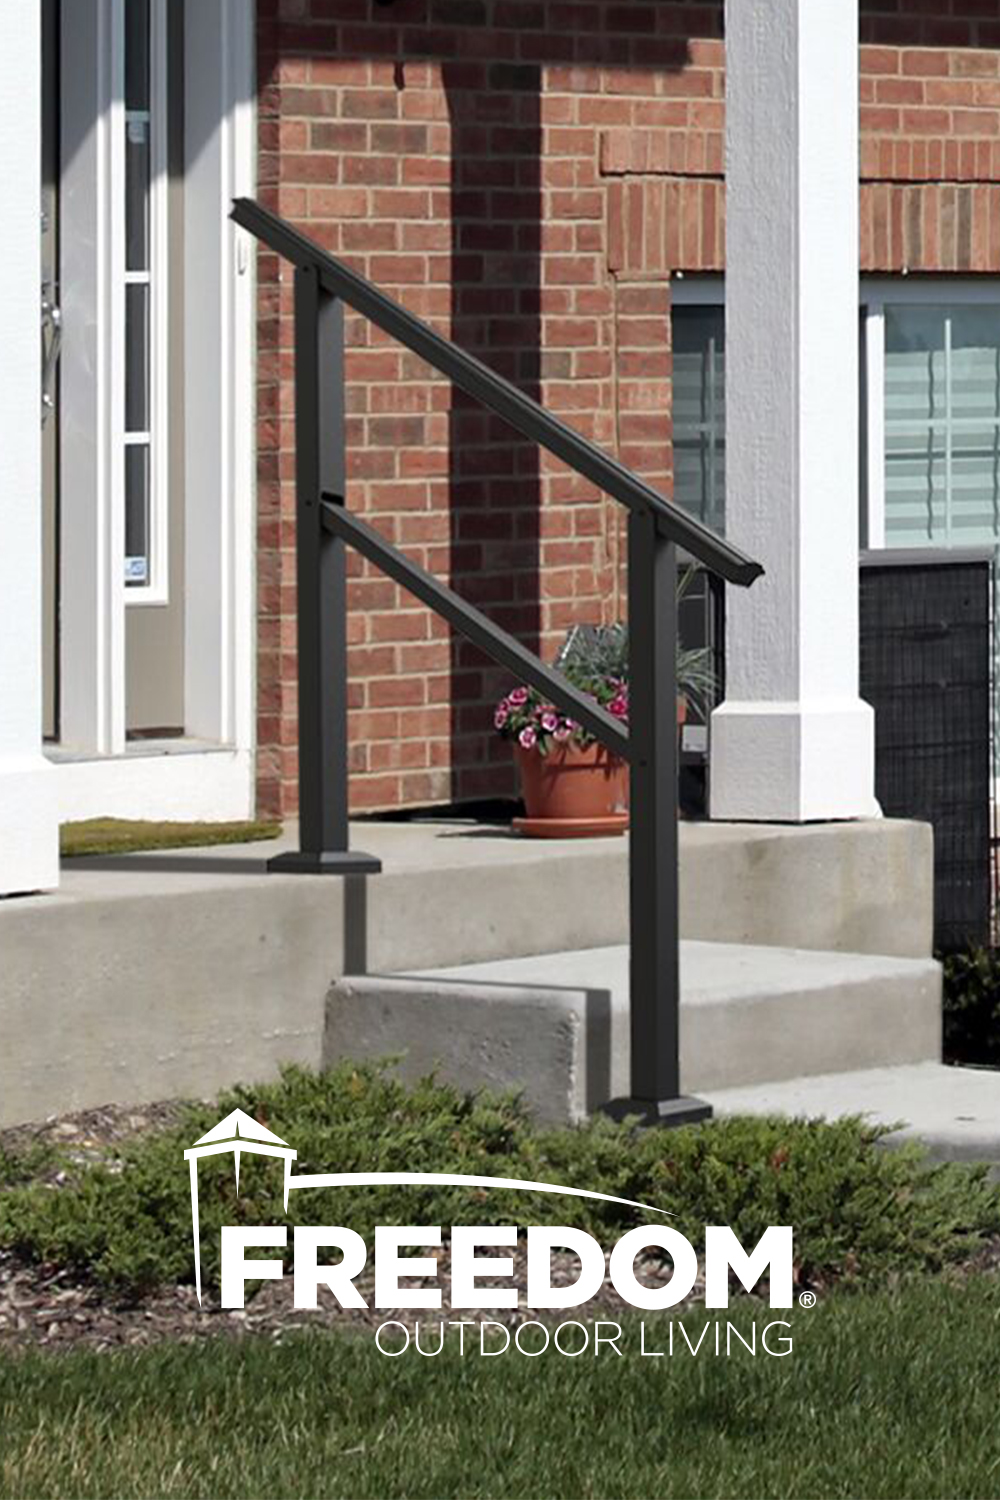 Freedom Assembled 4 159 Ft X 3 45 Ft Heathrow Matte Black   Lowes Outdoor Step Railings   Lowes Com   Balusters   Wrought Iron   Deck Railing   Handrail Kit